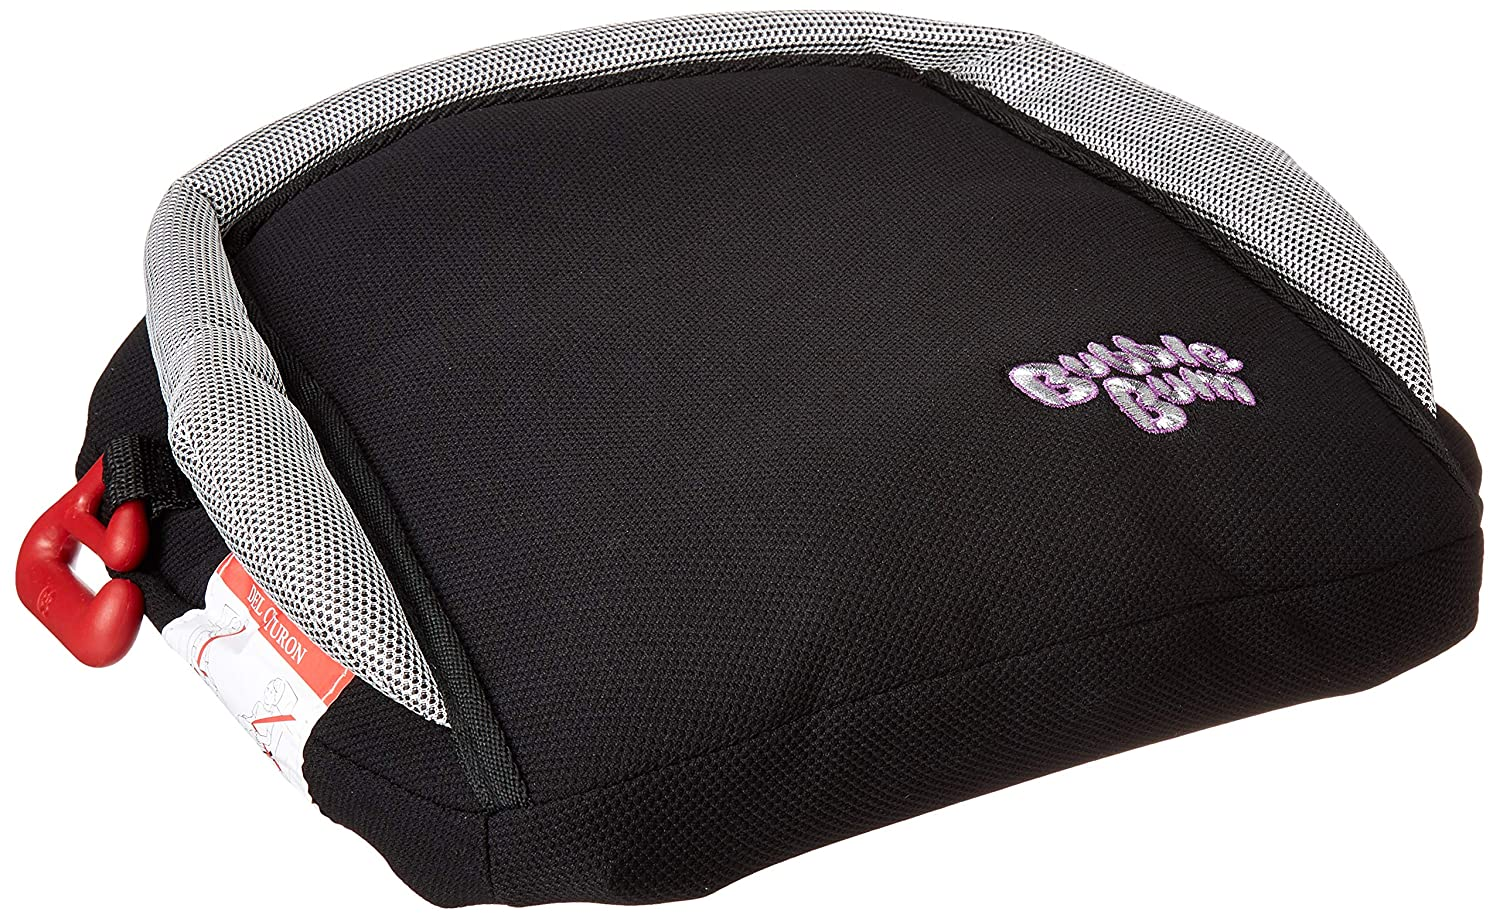 The BubbleBum Booster Seat Review